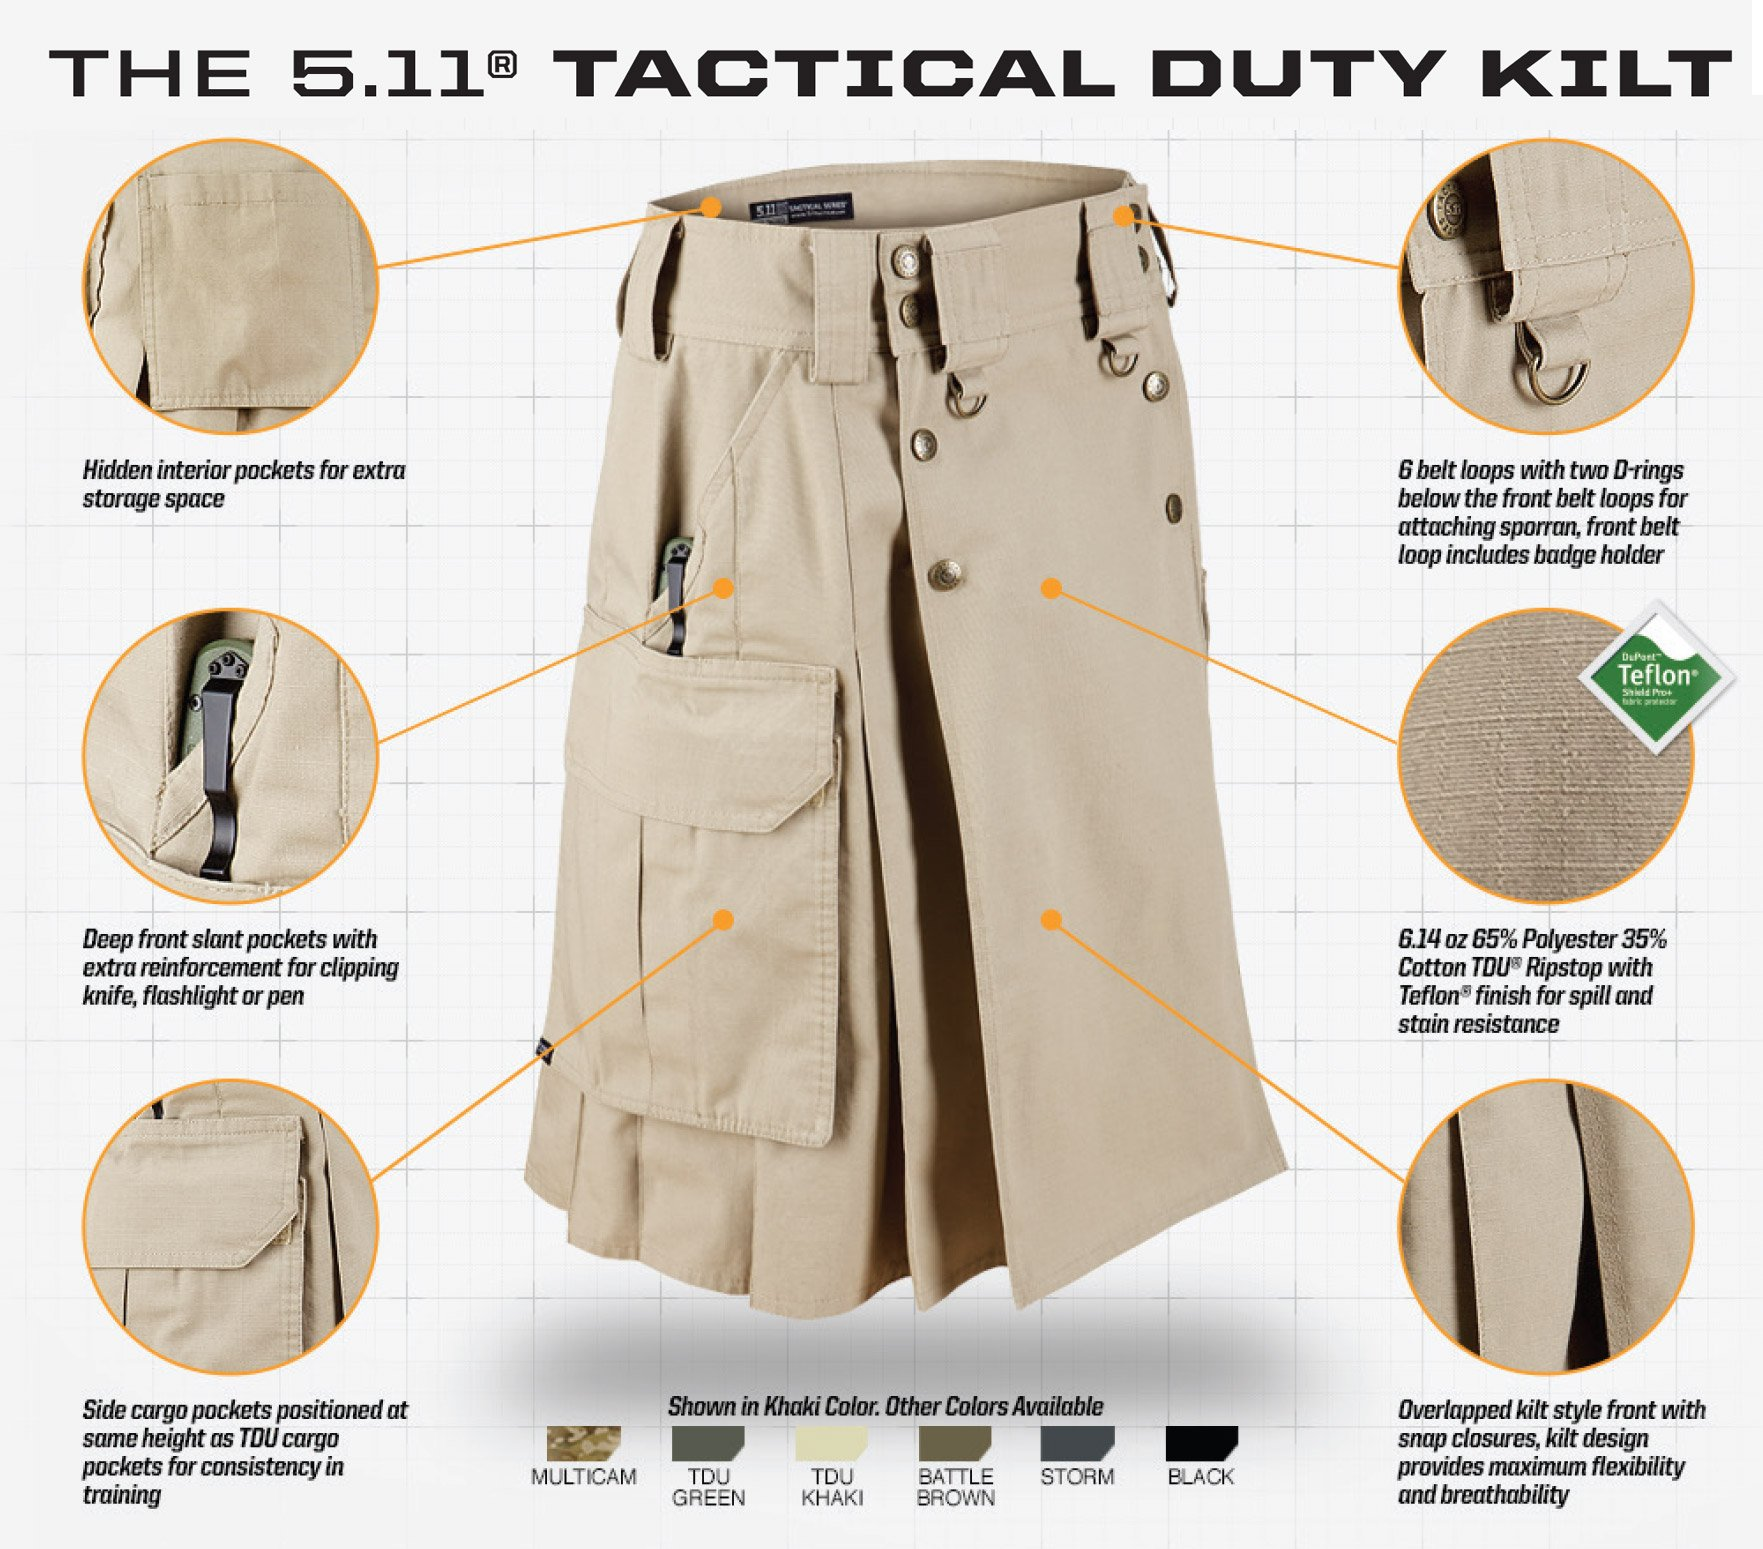 5-11 Tactical Duty Kilt